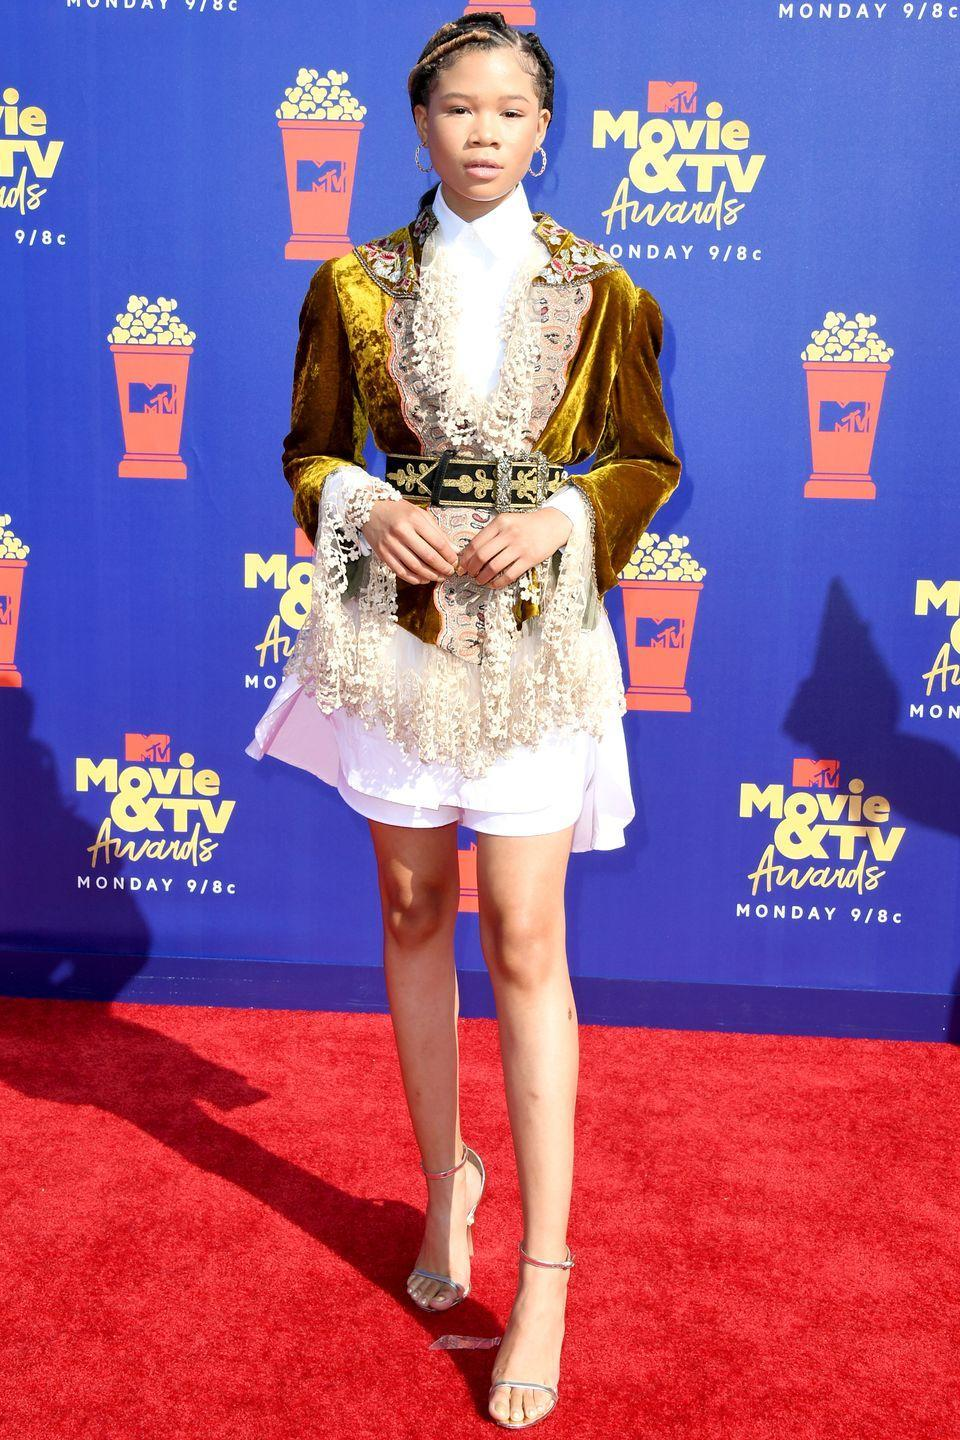 <p>Who: Storm Reid </p><p>When: June 15, 2019</p><p>Wearing: Etro, David Yurman jewels</p><p>Why: Storm Reid was a modern royal at the MTV Movie and TV Awards in Santa Barbara, California this week. Her crushed velvet jacket was a smart choice to contrast over a crisp white dress. </p>